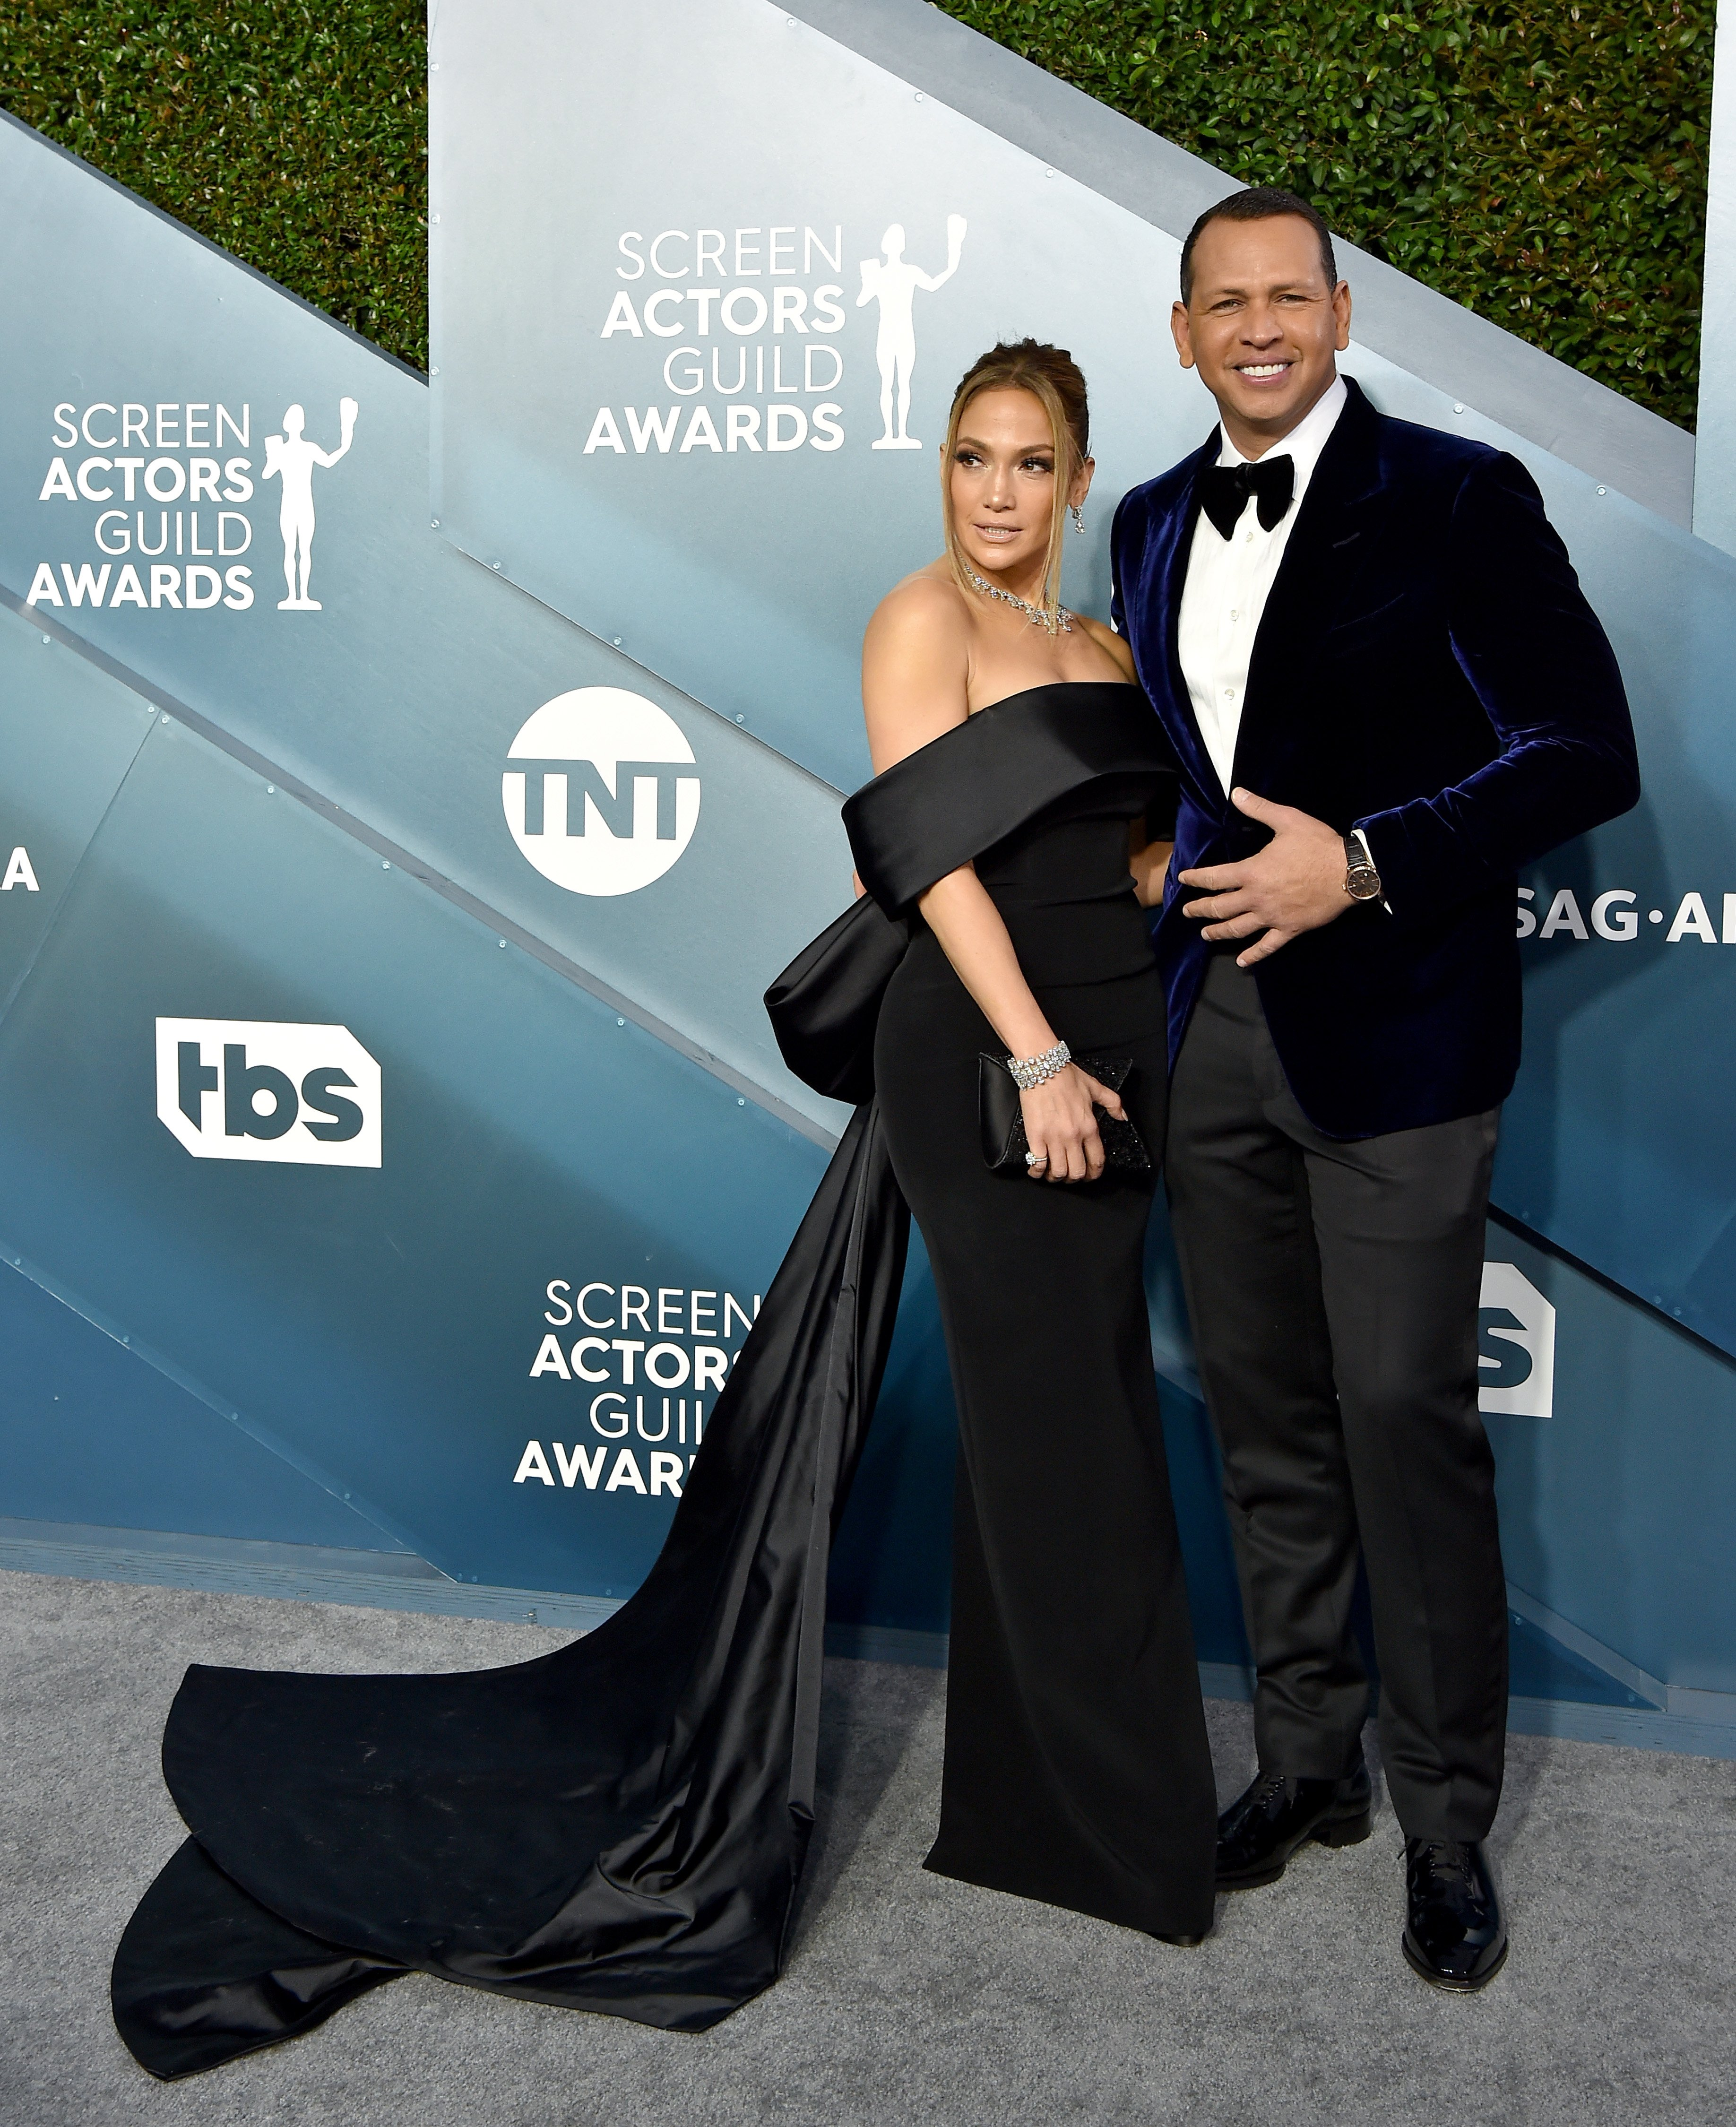 Jennifer Lopez and Alex Rodriguez attend the Screen Actors Guild Awards in Los Angeles, California on January 19, 2020 | Photo: Getty Images